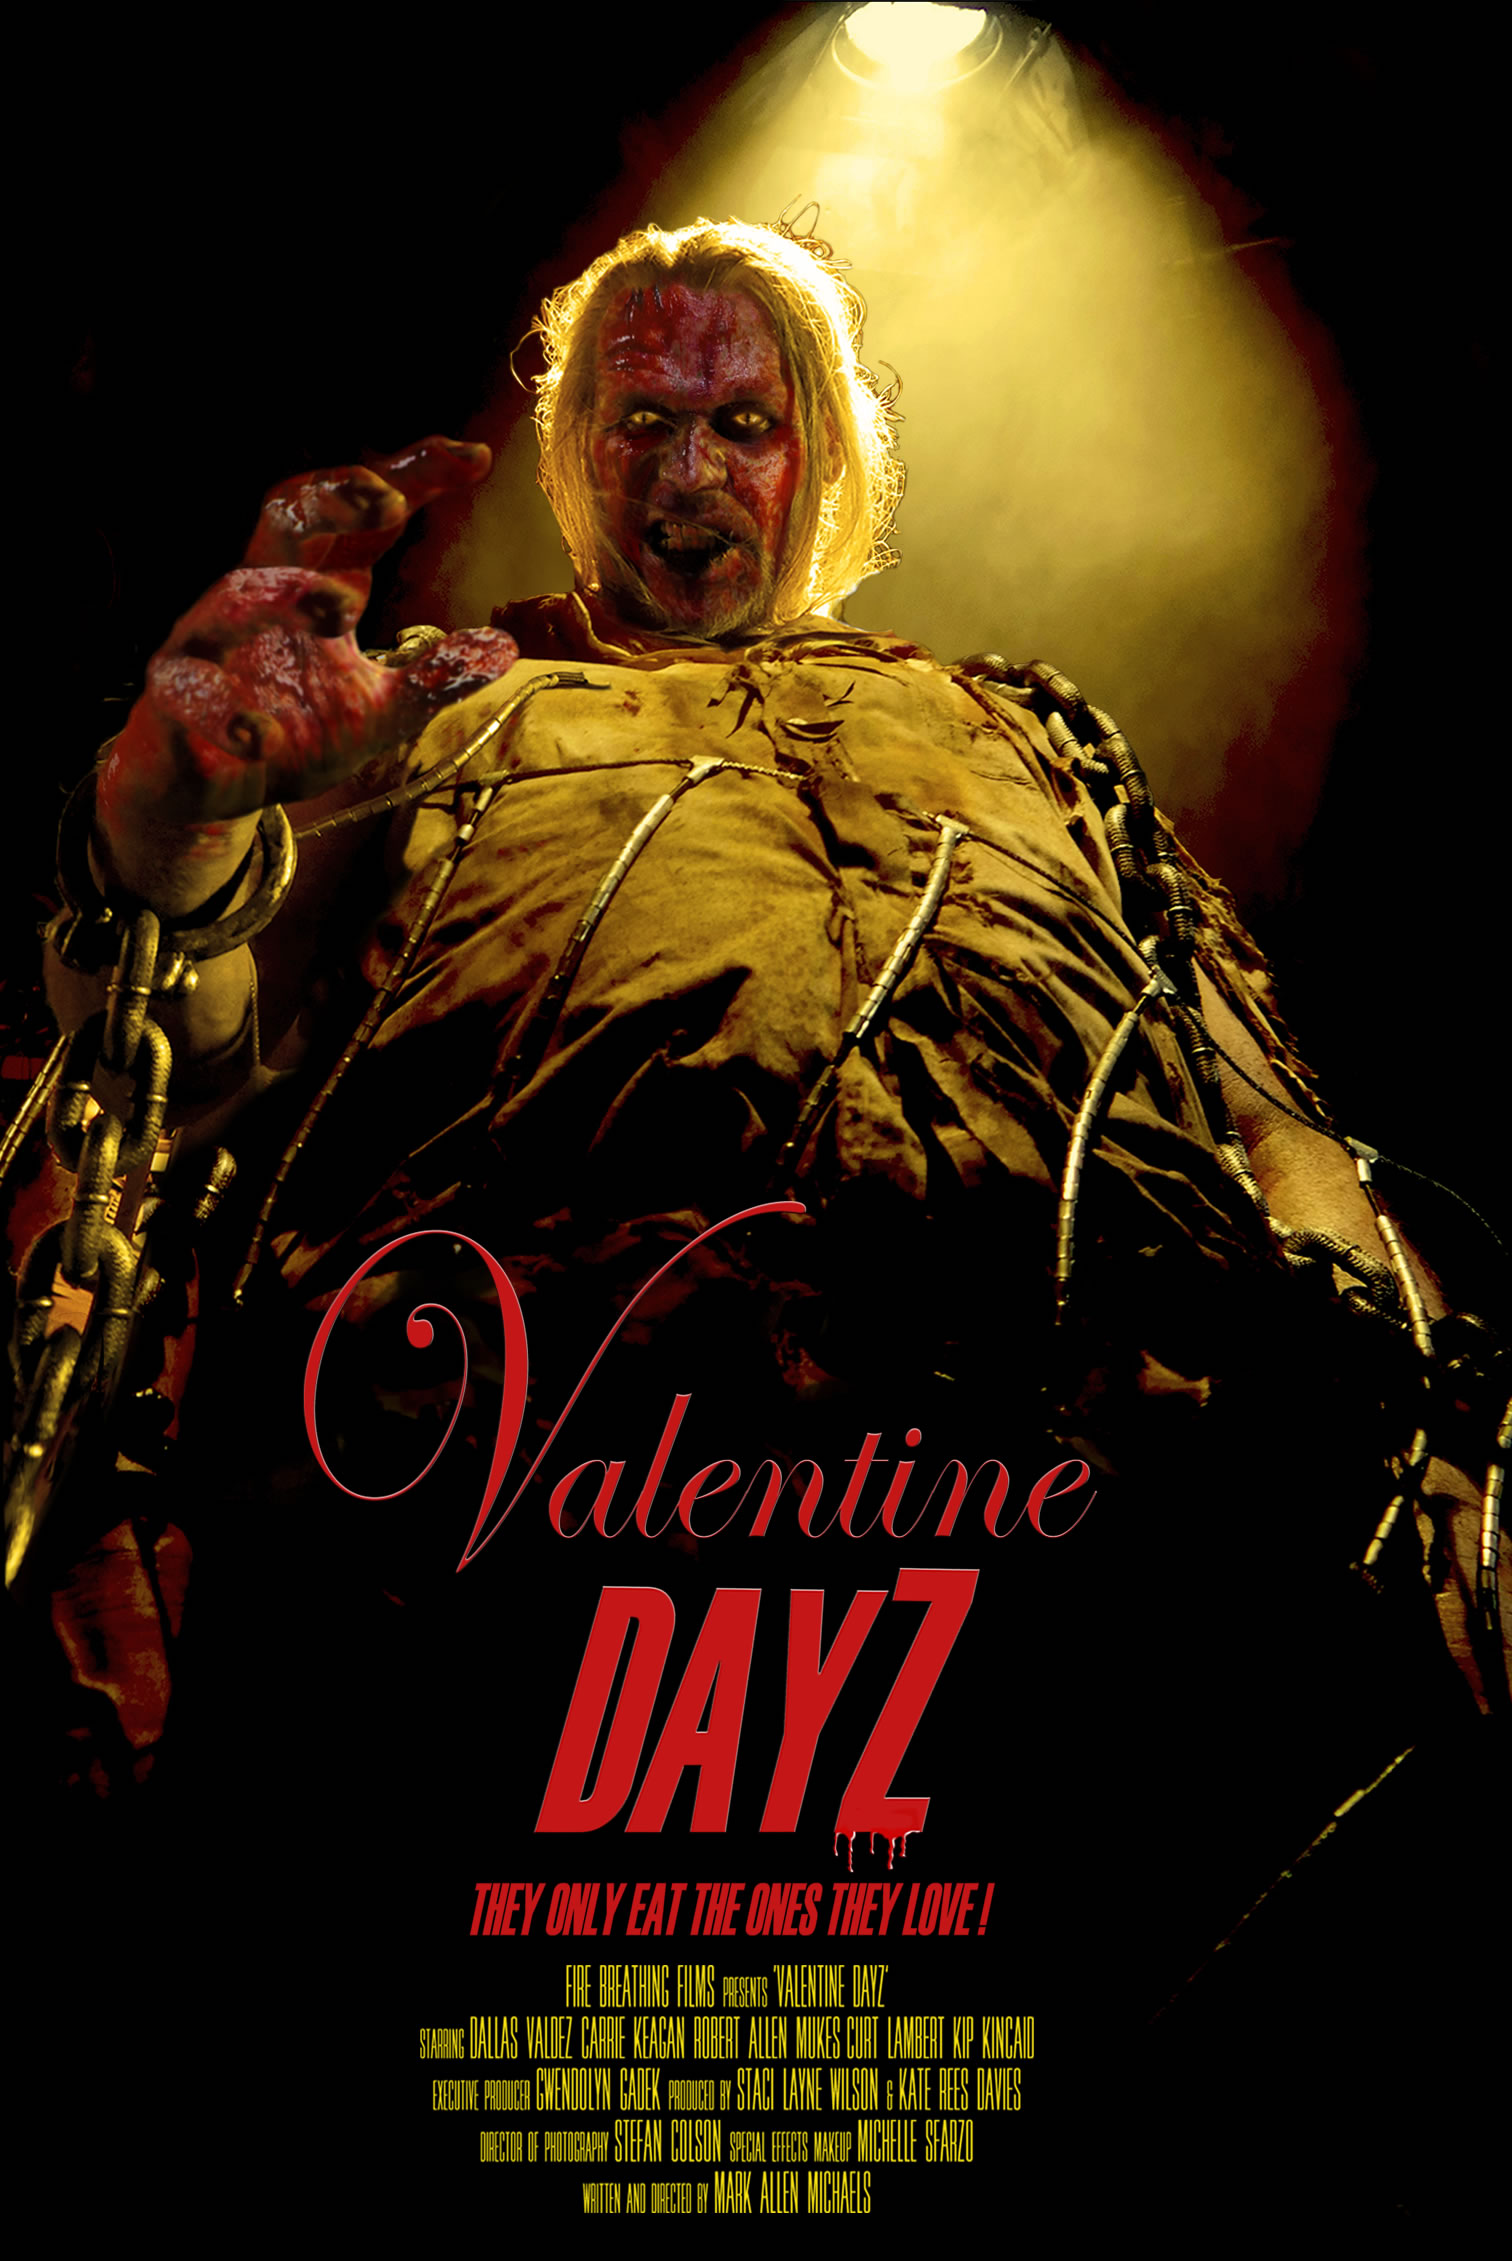 Valentine Dayz Film Screening Zombies Film Palm Springs